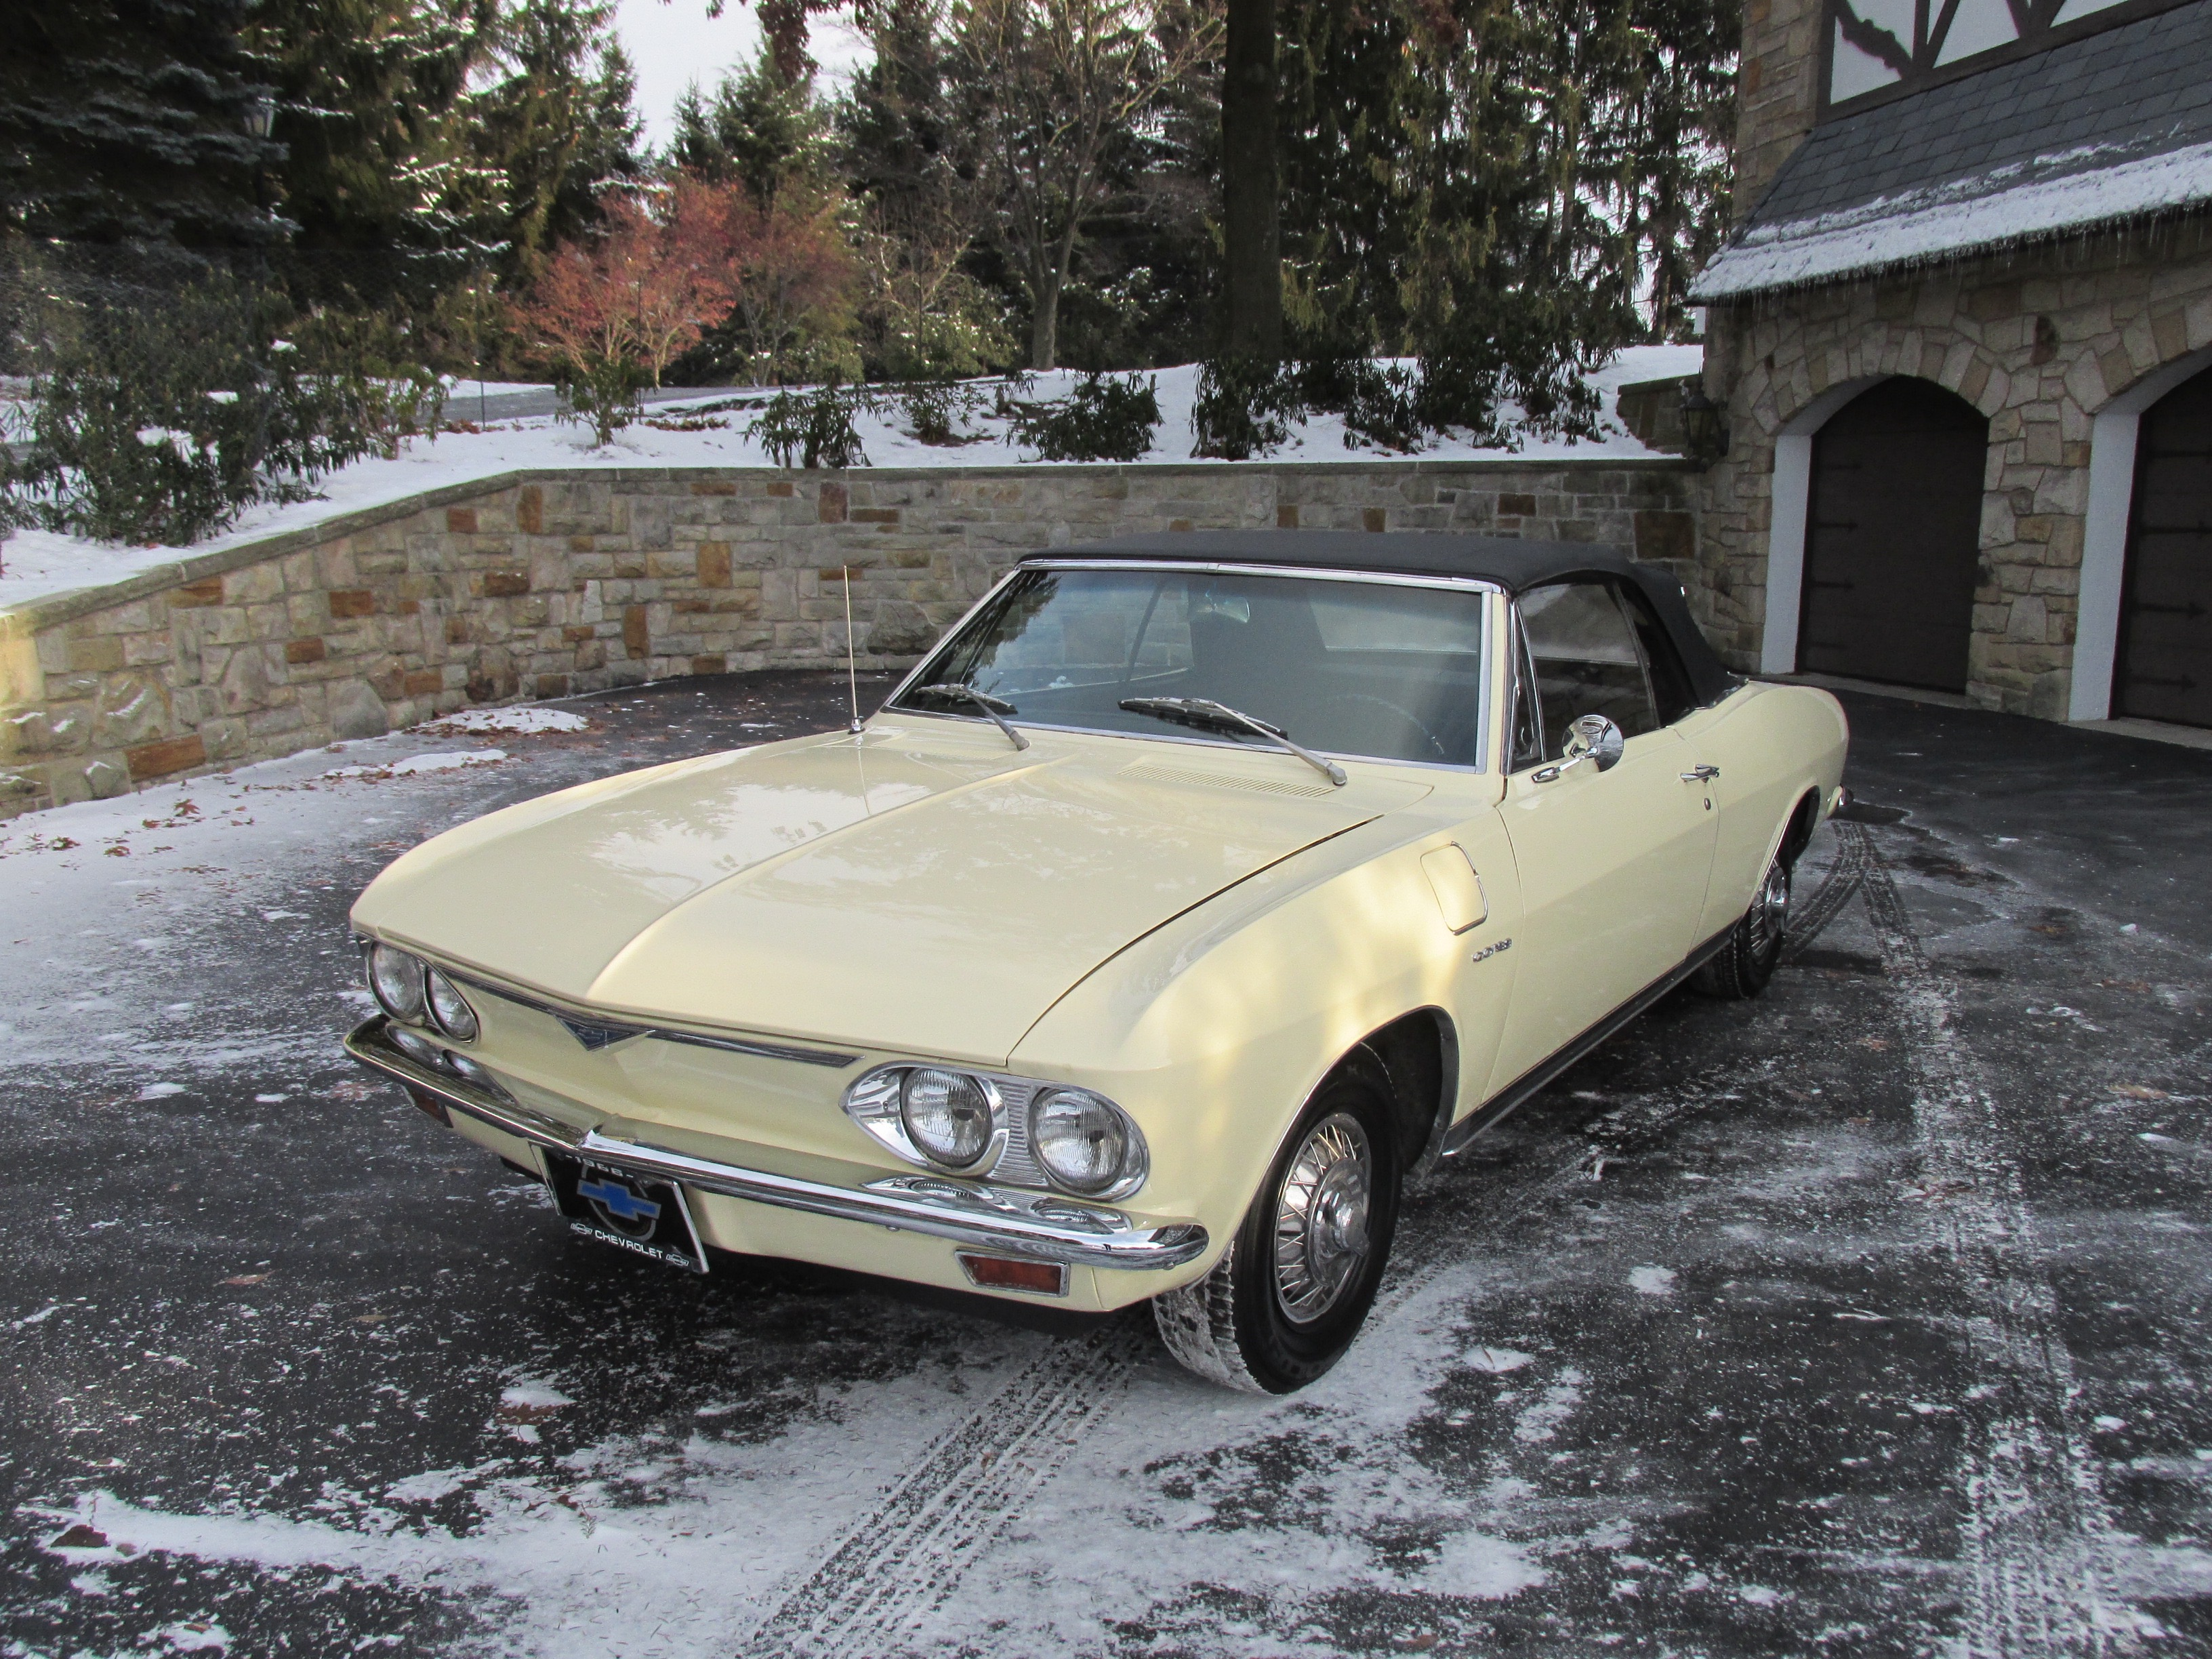 1966 Chevrolet Corvair Corsa Convertible - Fort Pitt Classic Cars